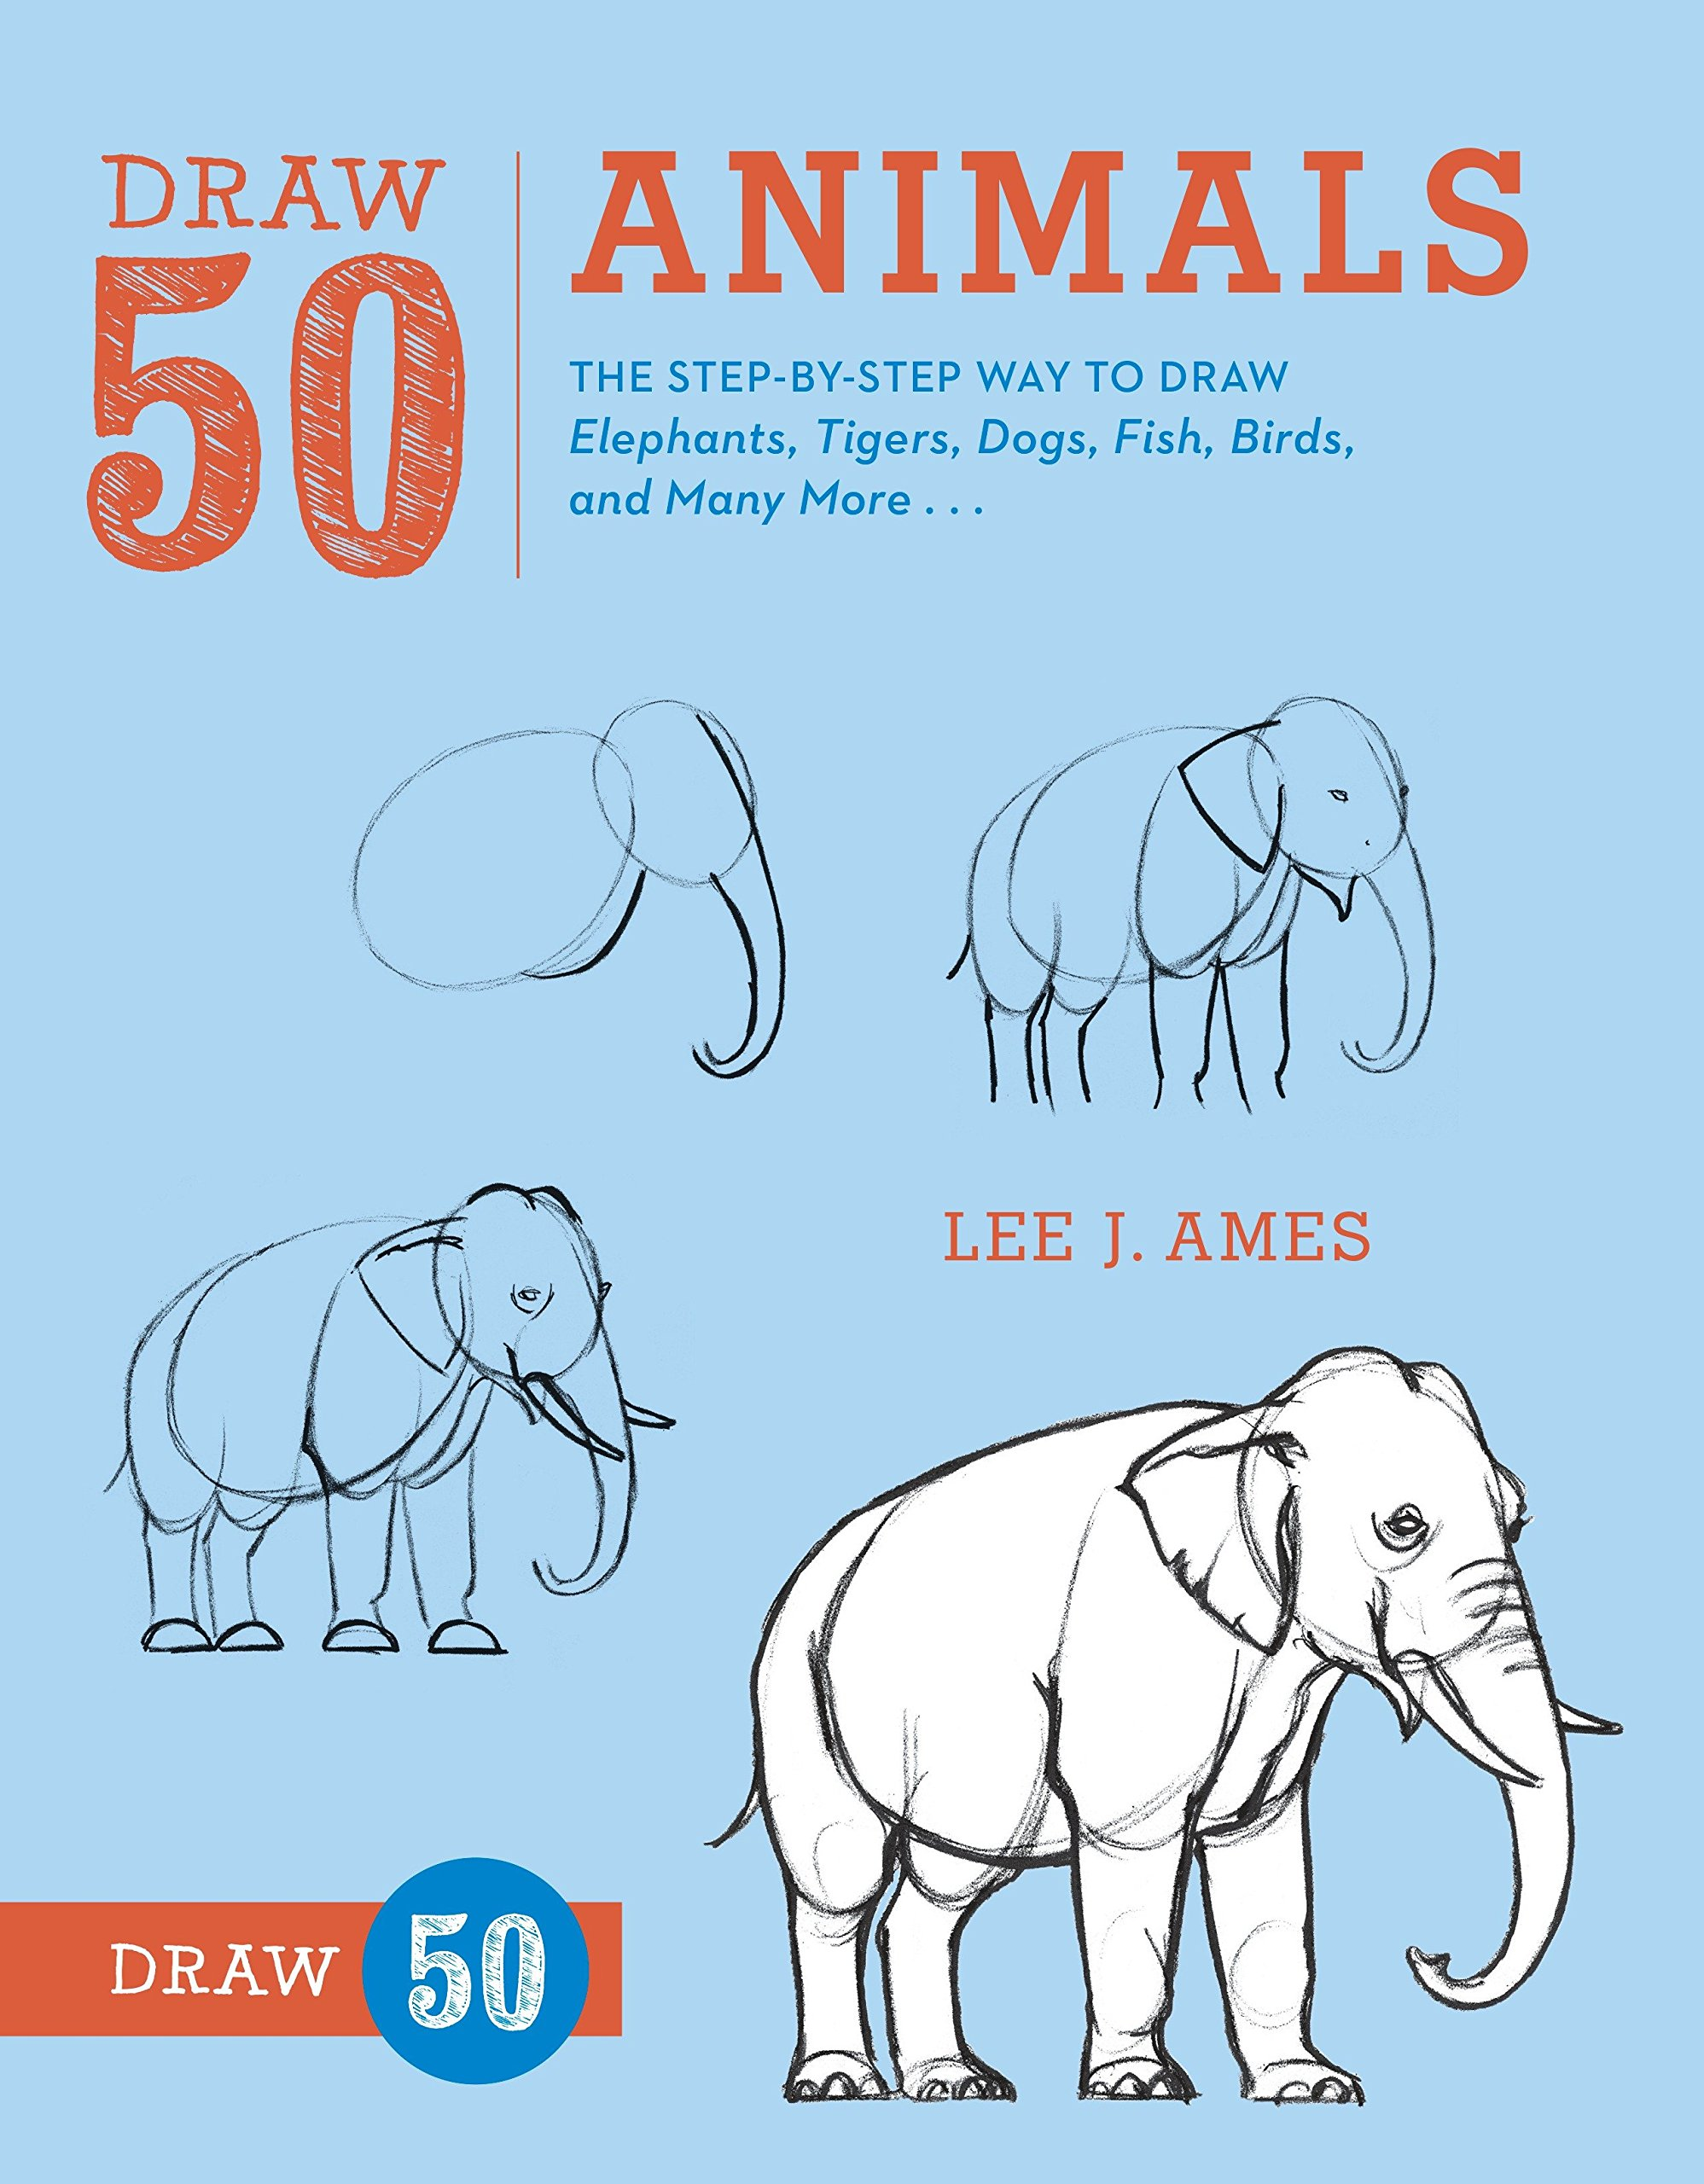 Draw 50 Animals The Step By Step Way To Draw Elephants Tigers Dogs Fish Birds And Many More Ames Lee J 9780823085781 Books Amazon Ca